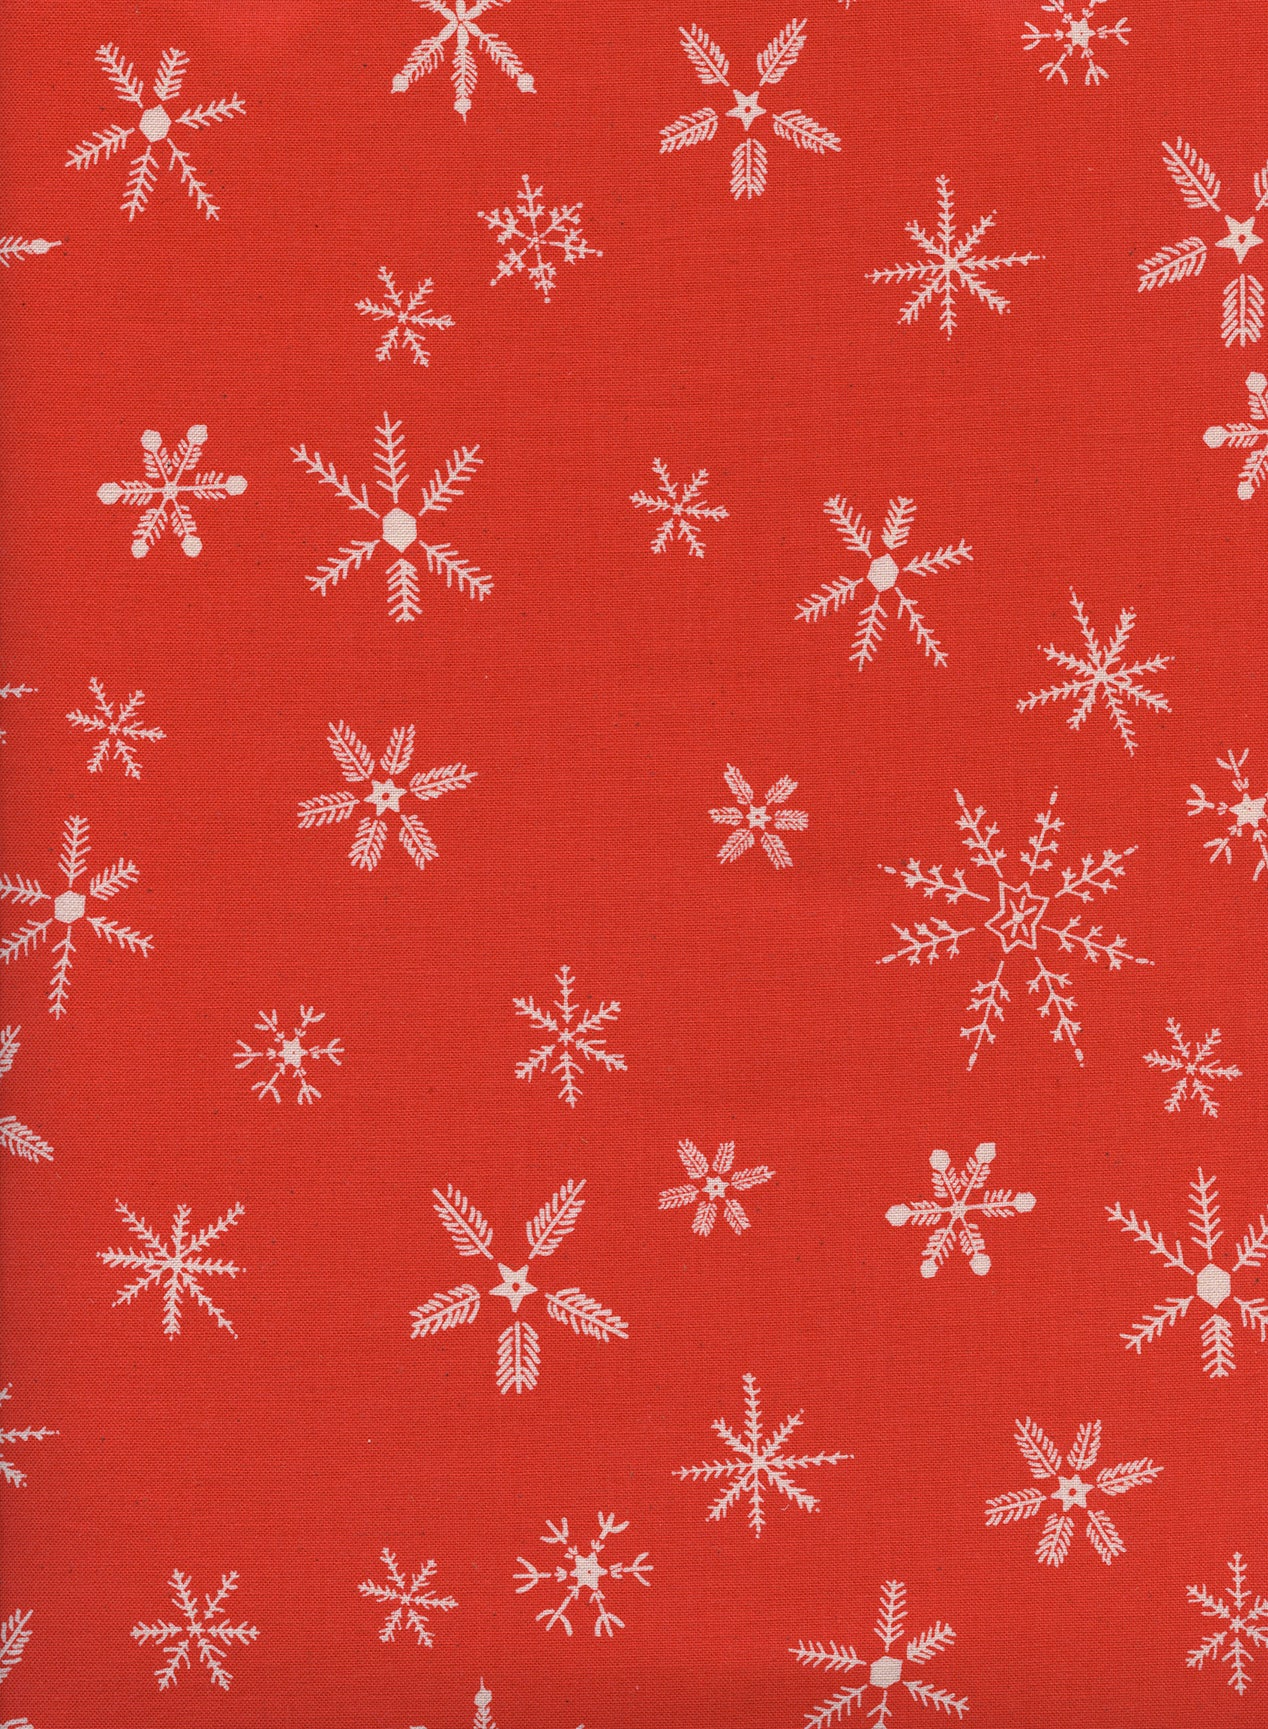 C+S Frost - Flurry - Red Unbleached Cotton Fabric